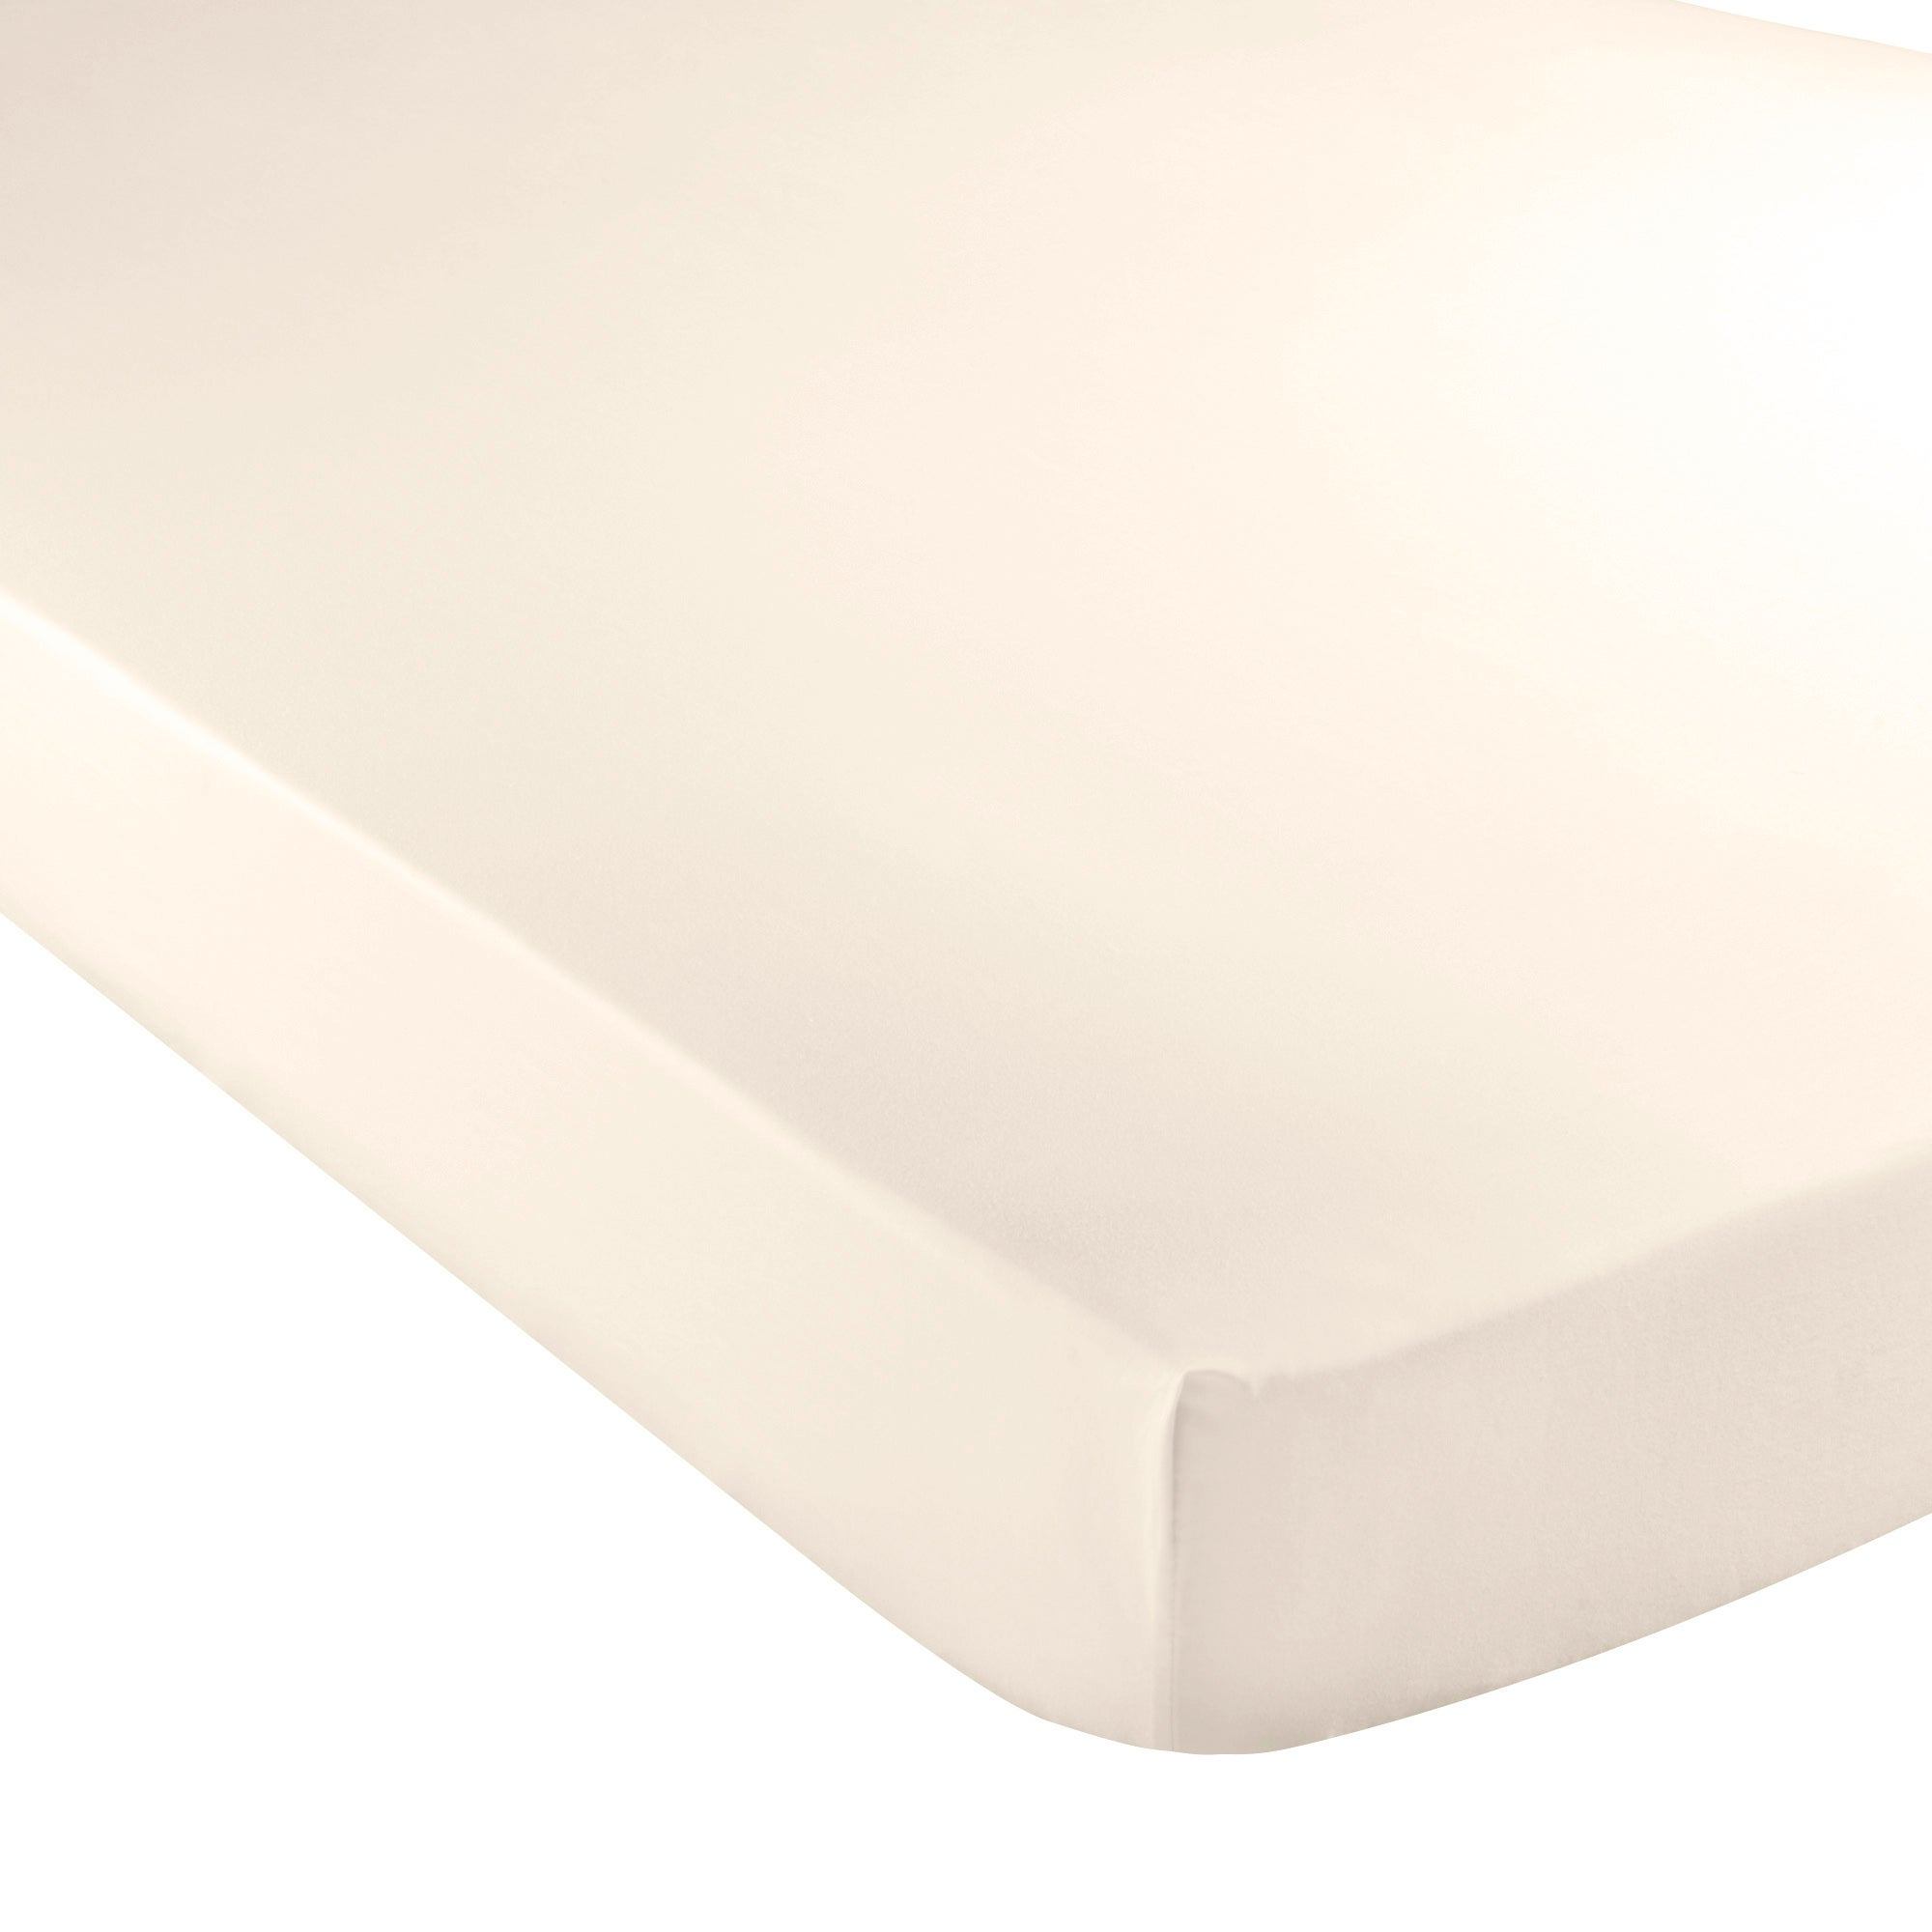 Image of Hotel 300 Thread Count Cream 32cm Fitted Sheet Cream